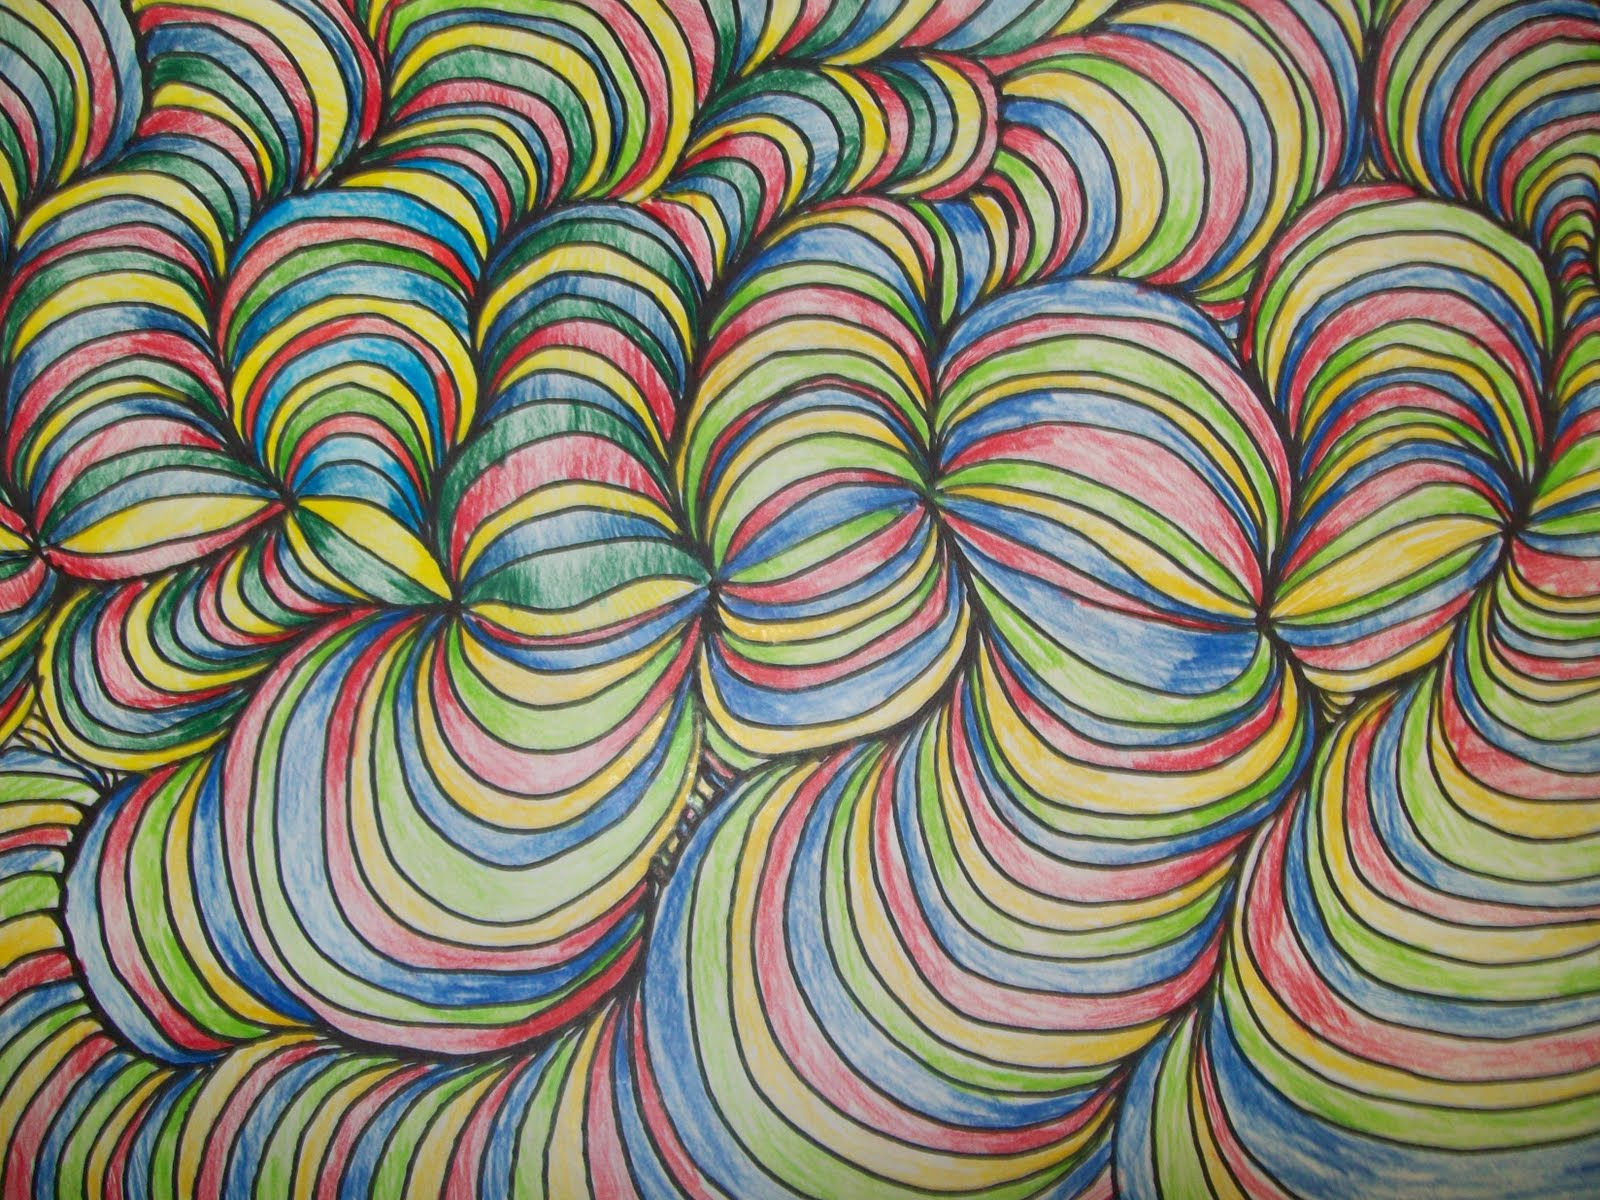 Color Line Design : Art with mr e line design w shading student work in